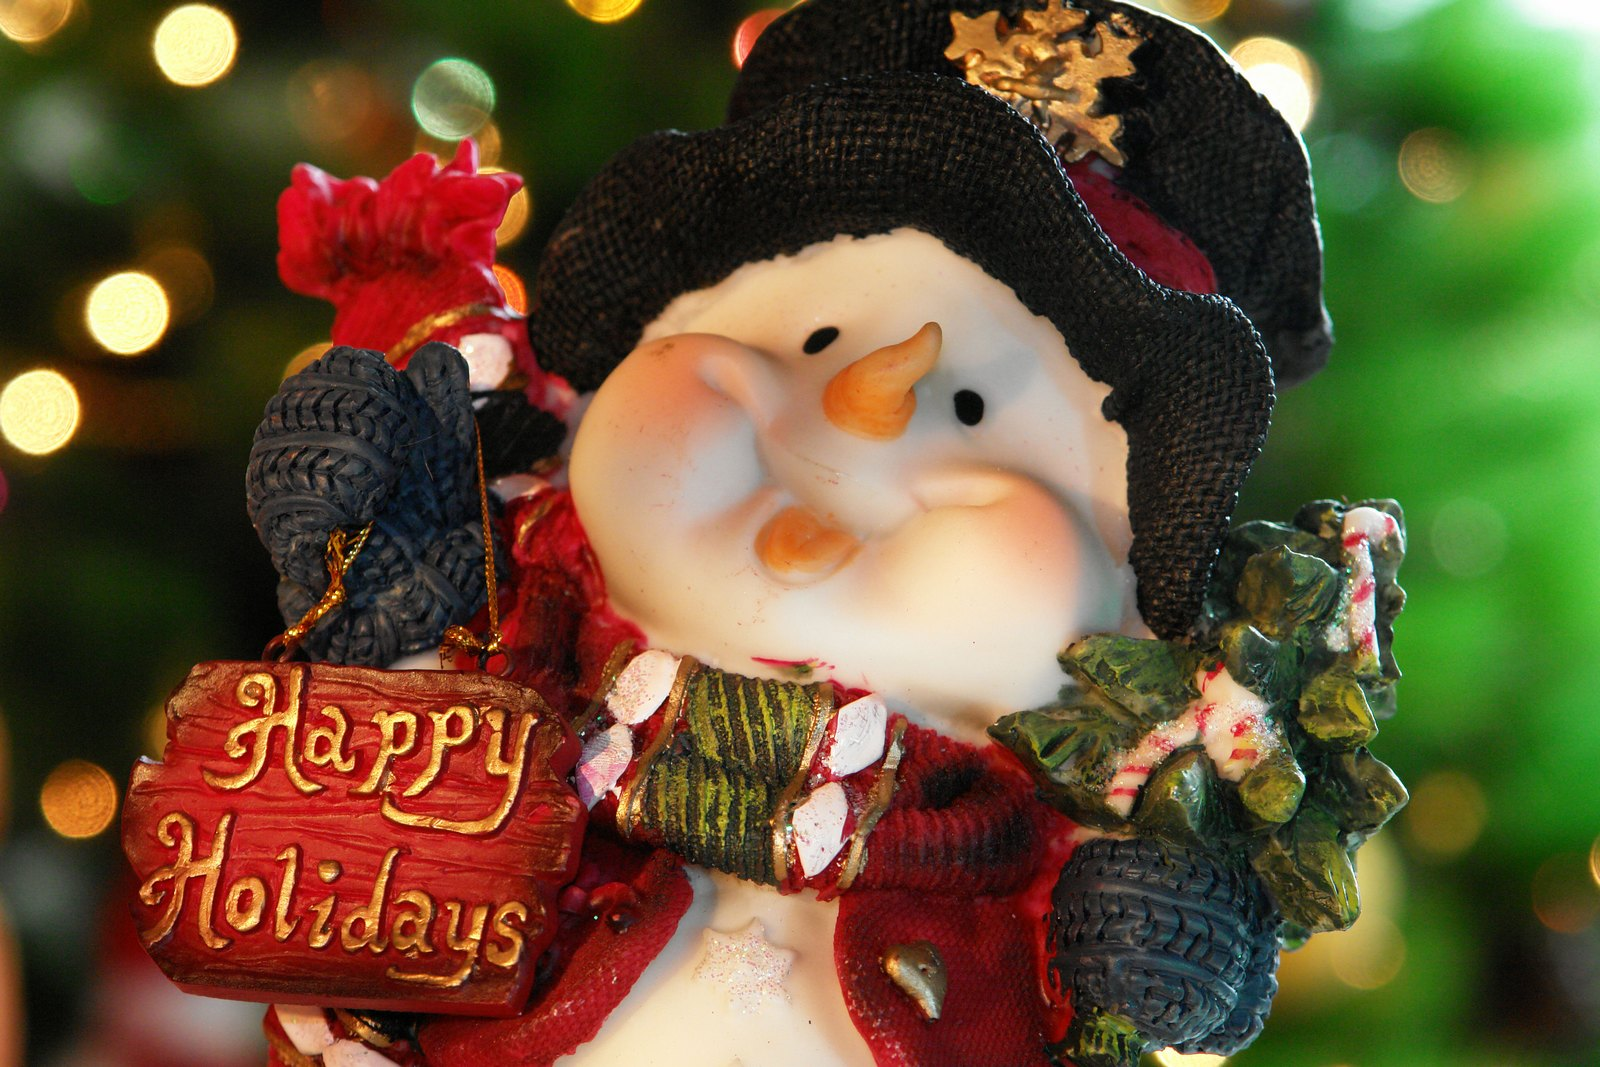 Funny wallpapersHD wallpapers cute christmas wallpapers 1600x1067